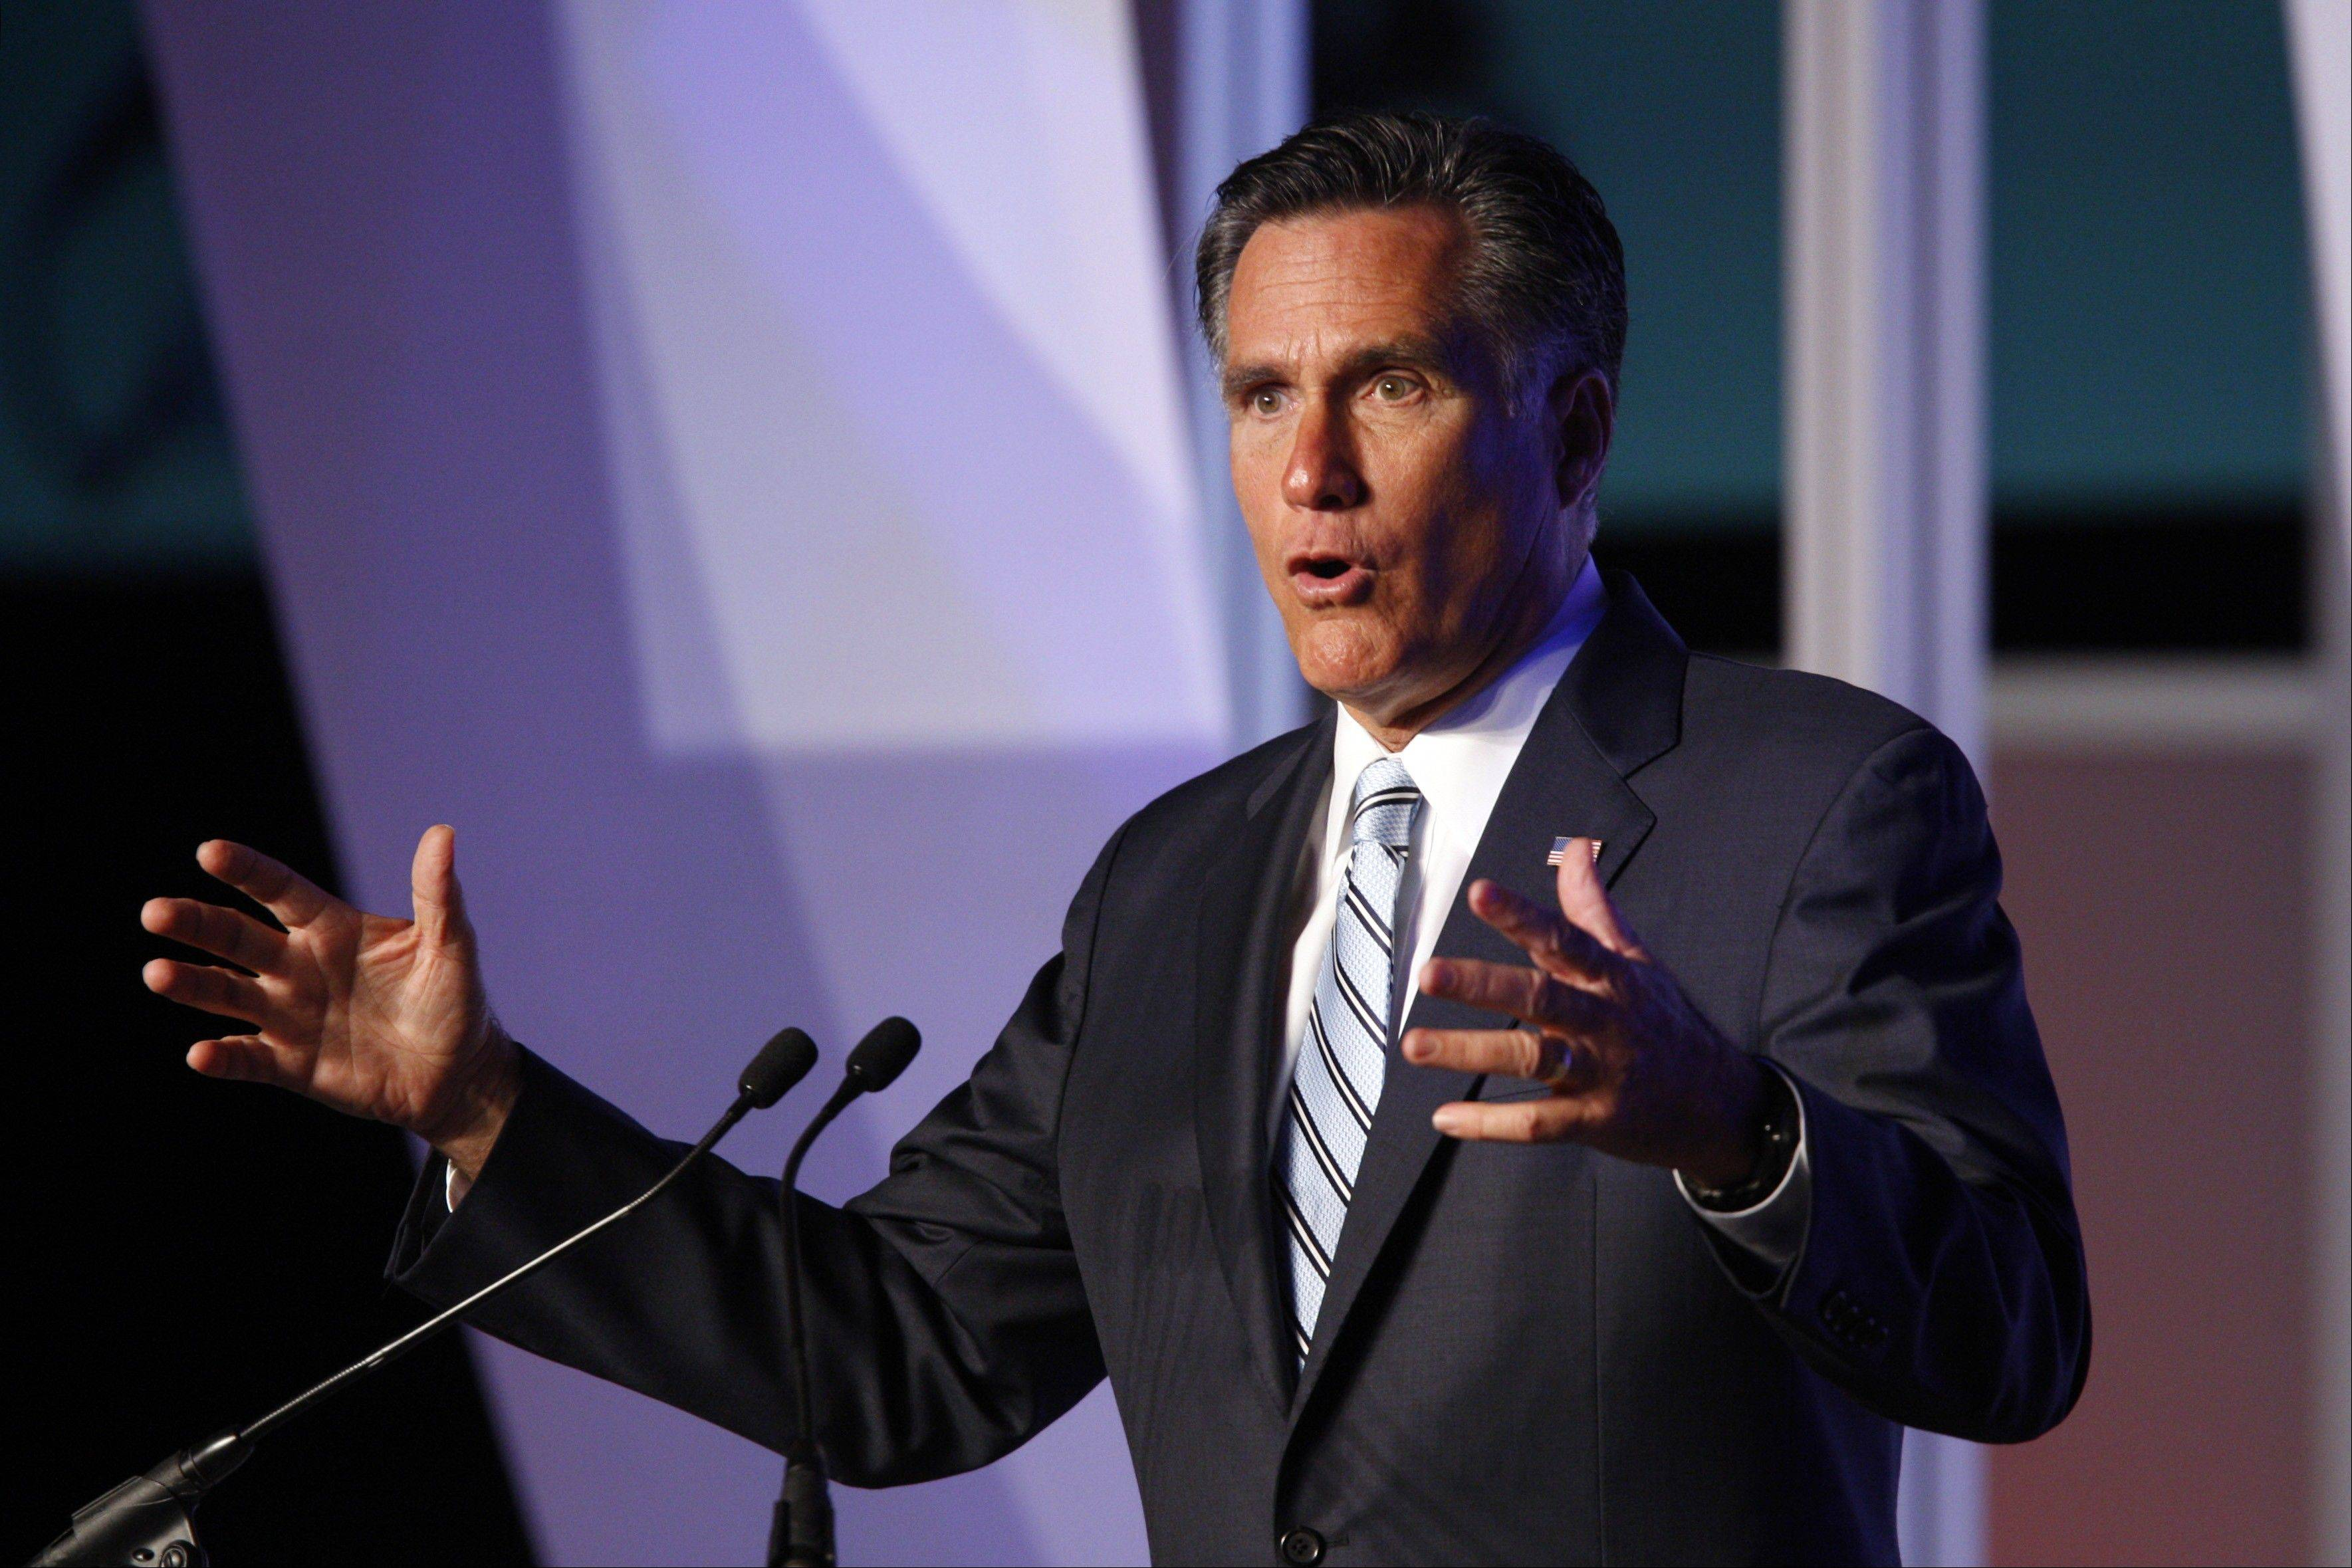 Republican presidential candidate and former Massachusetts Gov. Mitt Romney addresses the U.S. Hispanic Chamber of Commerce in Los Angeles, Monday.